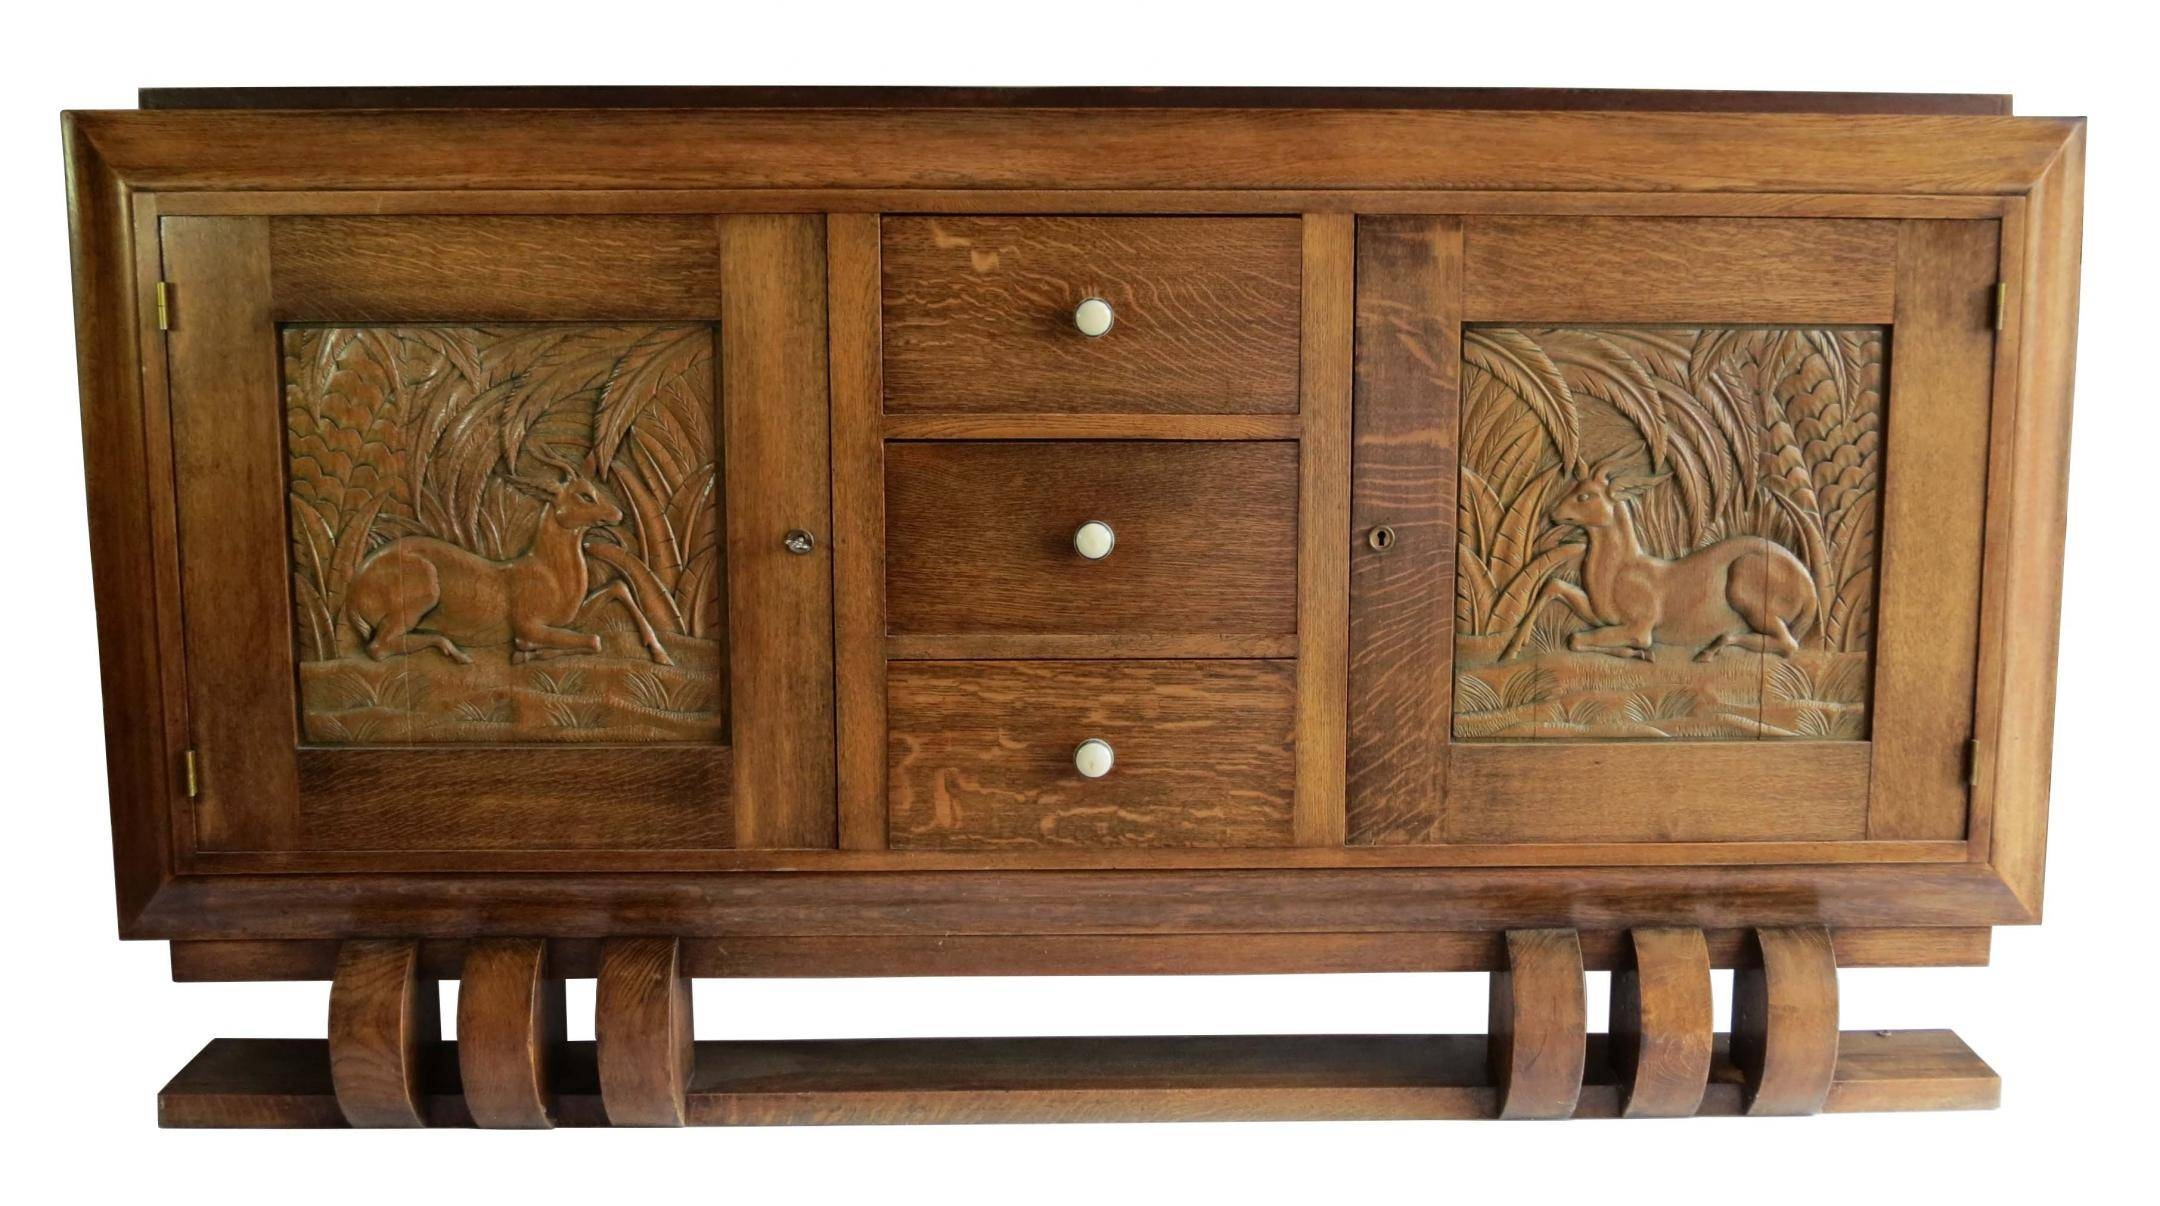 Dudouyt French Art Deco Sideboard With Carved Biches | Modernism Regarding Most Recently Released Art Deco Sideboards (#5 of 15)